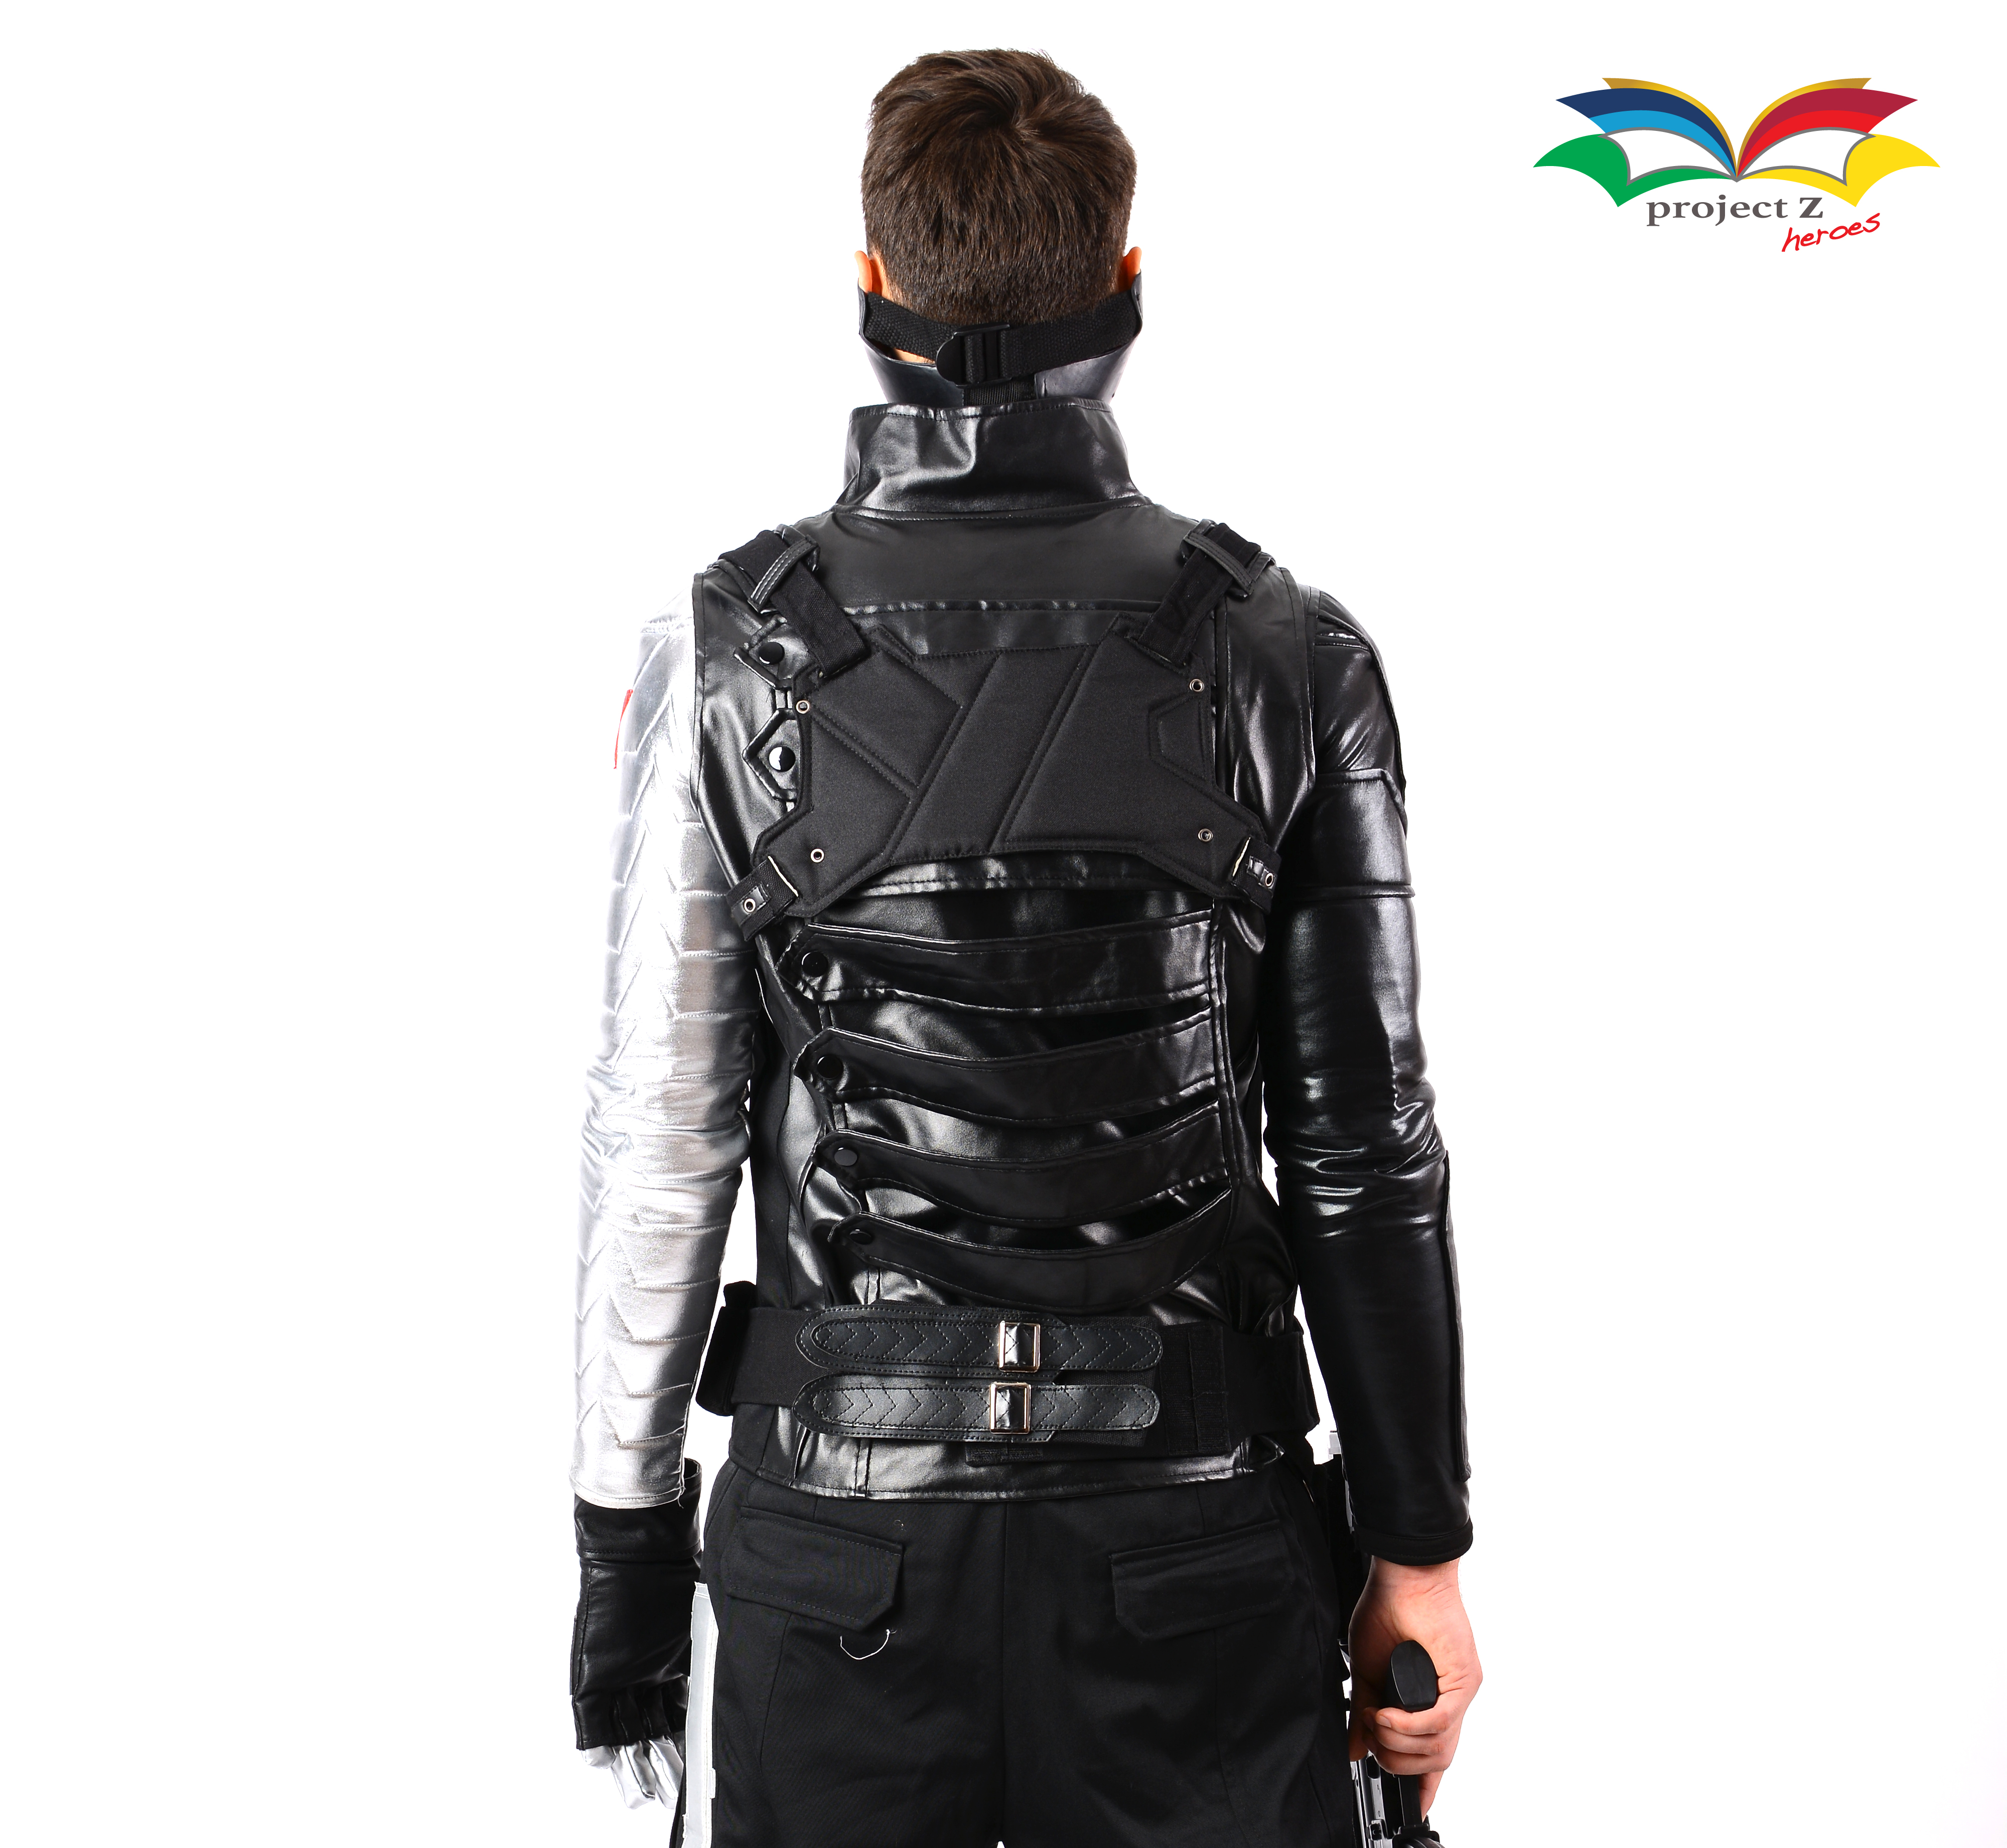 Winter Soldier costume back